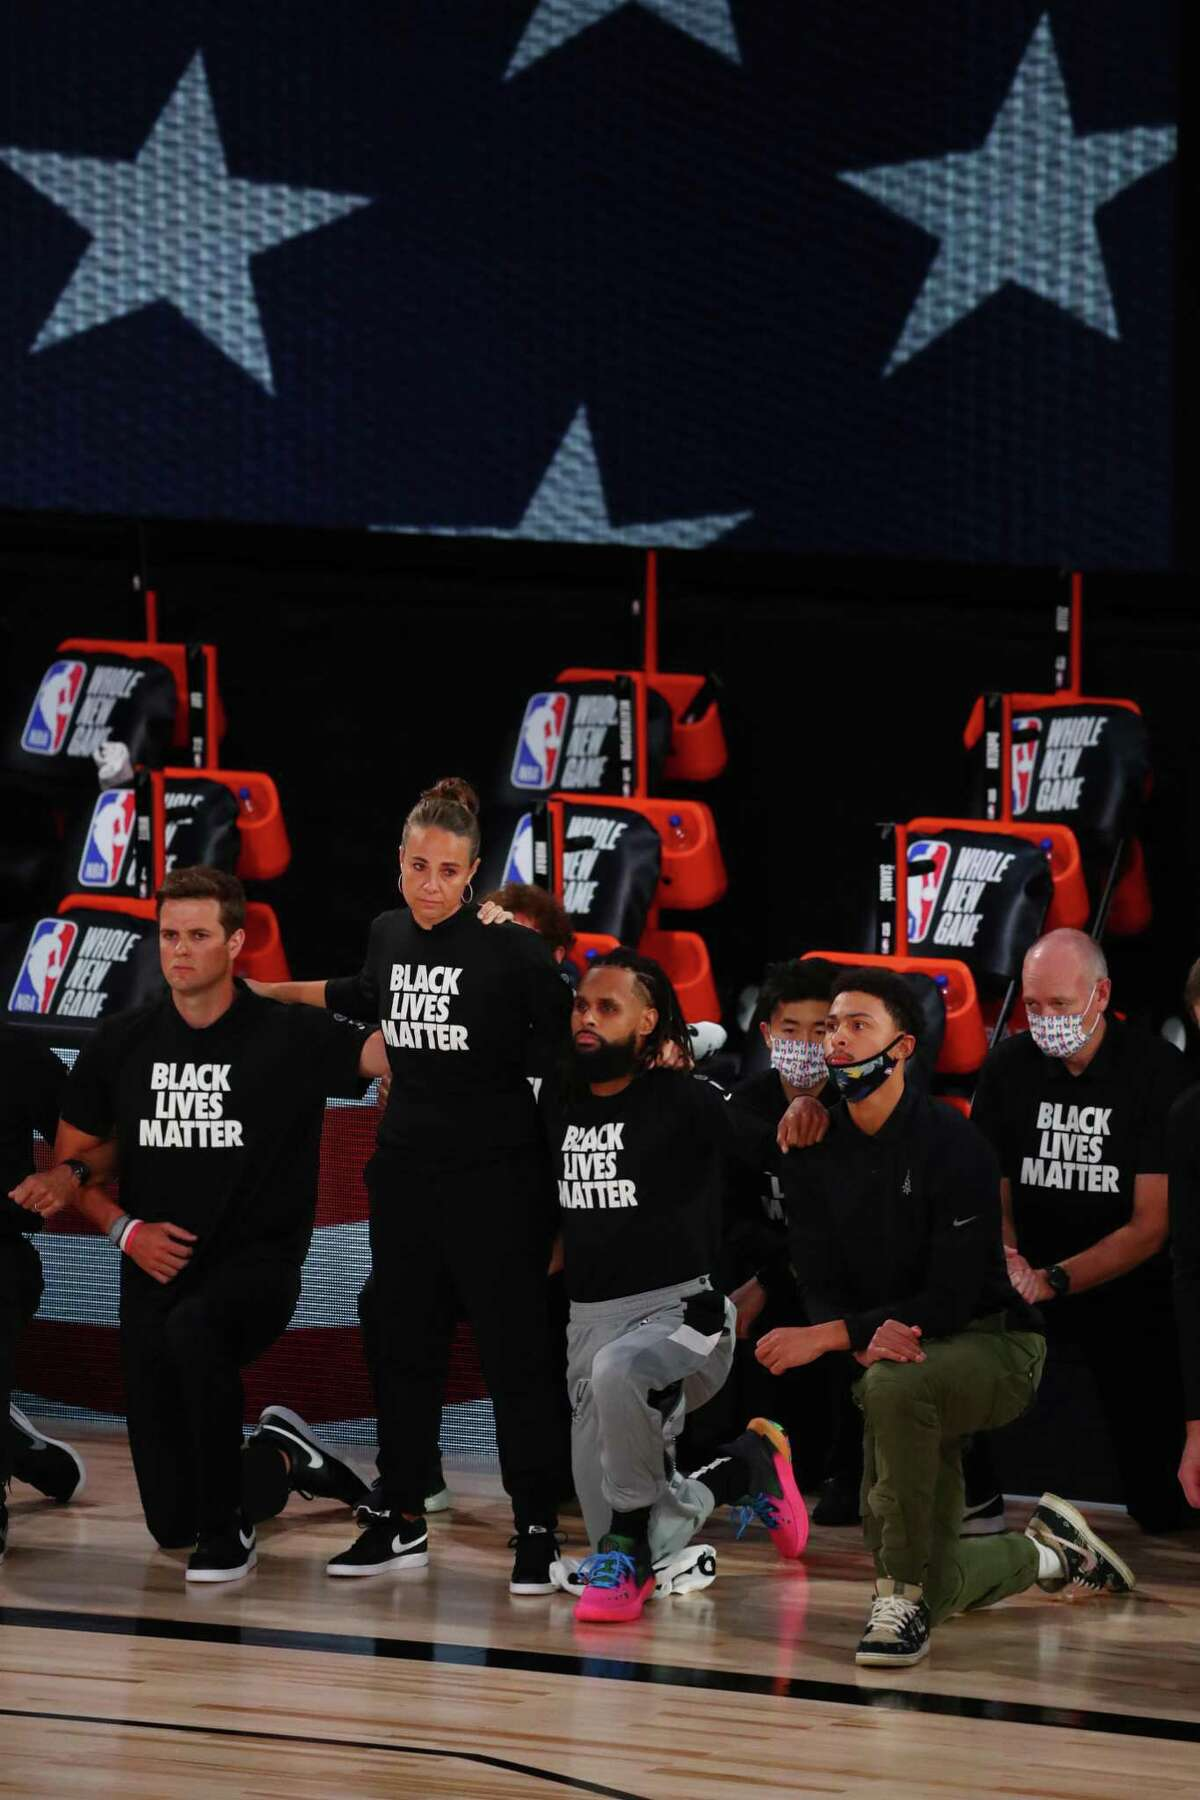 While Spurs assistant coach Becky Hammon and coach Gregg Popovich stood for the national anthem, the players took a knee. Most players and coaches also wore Black Lives Matters shirts.